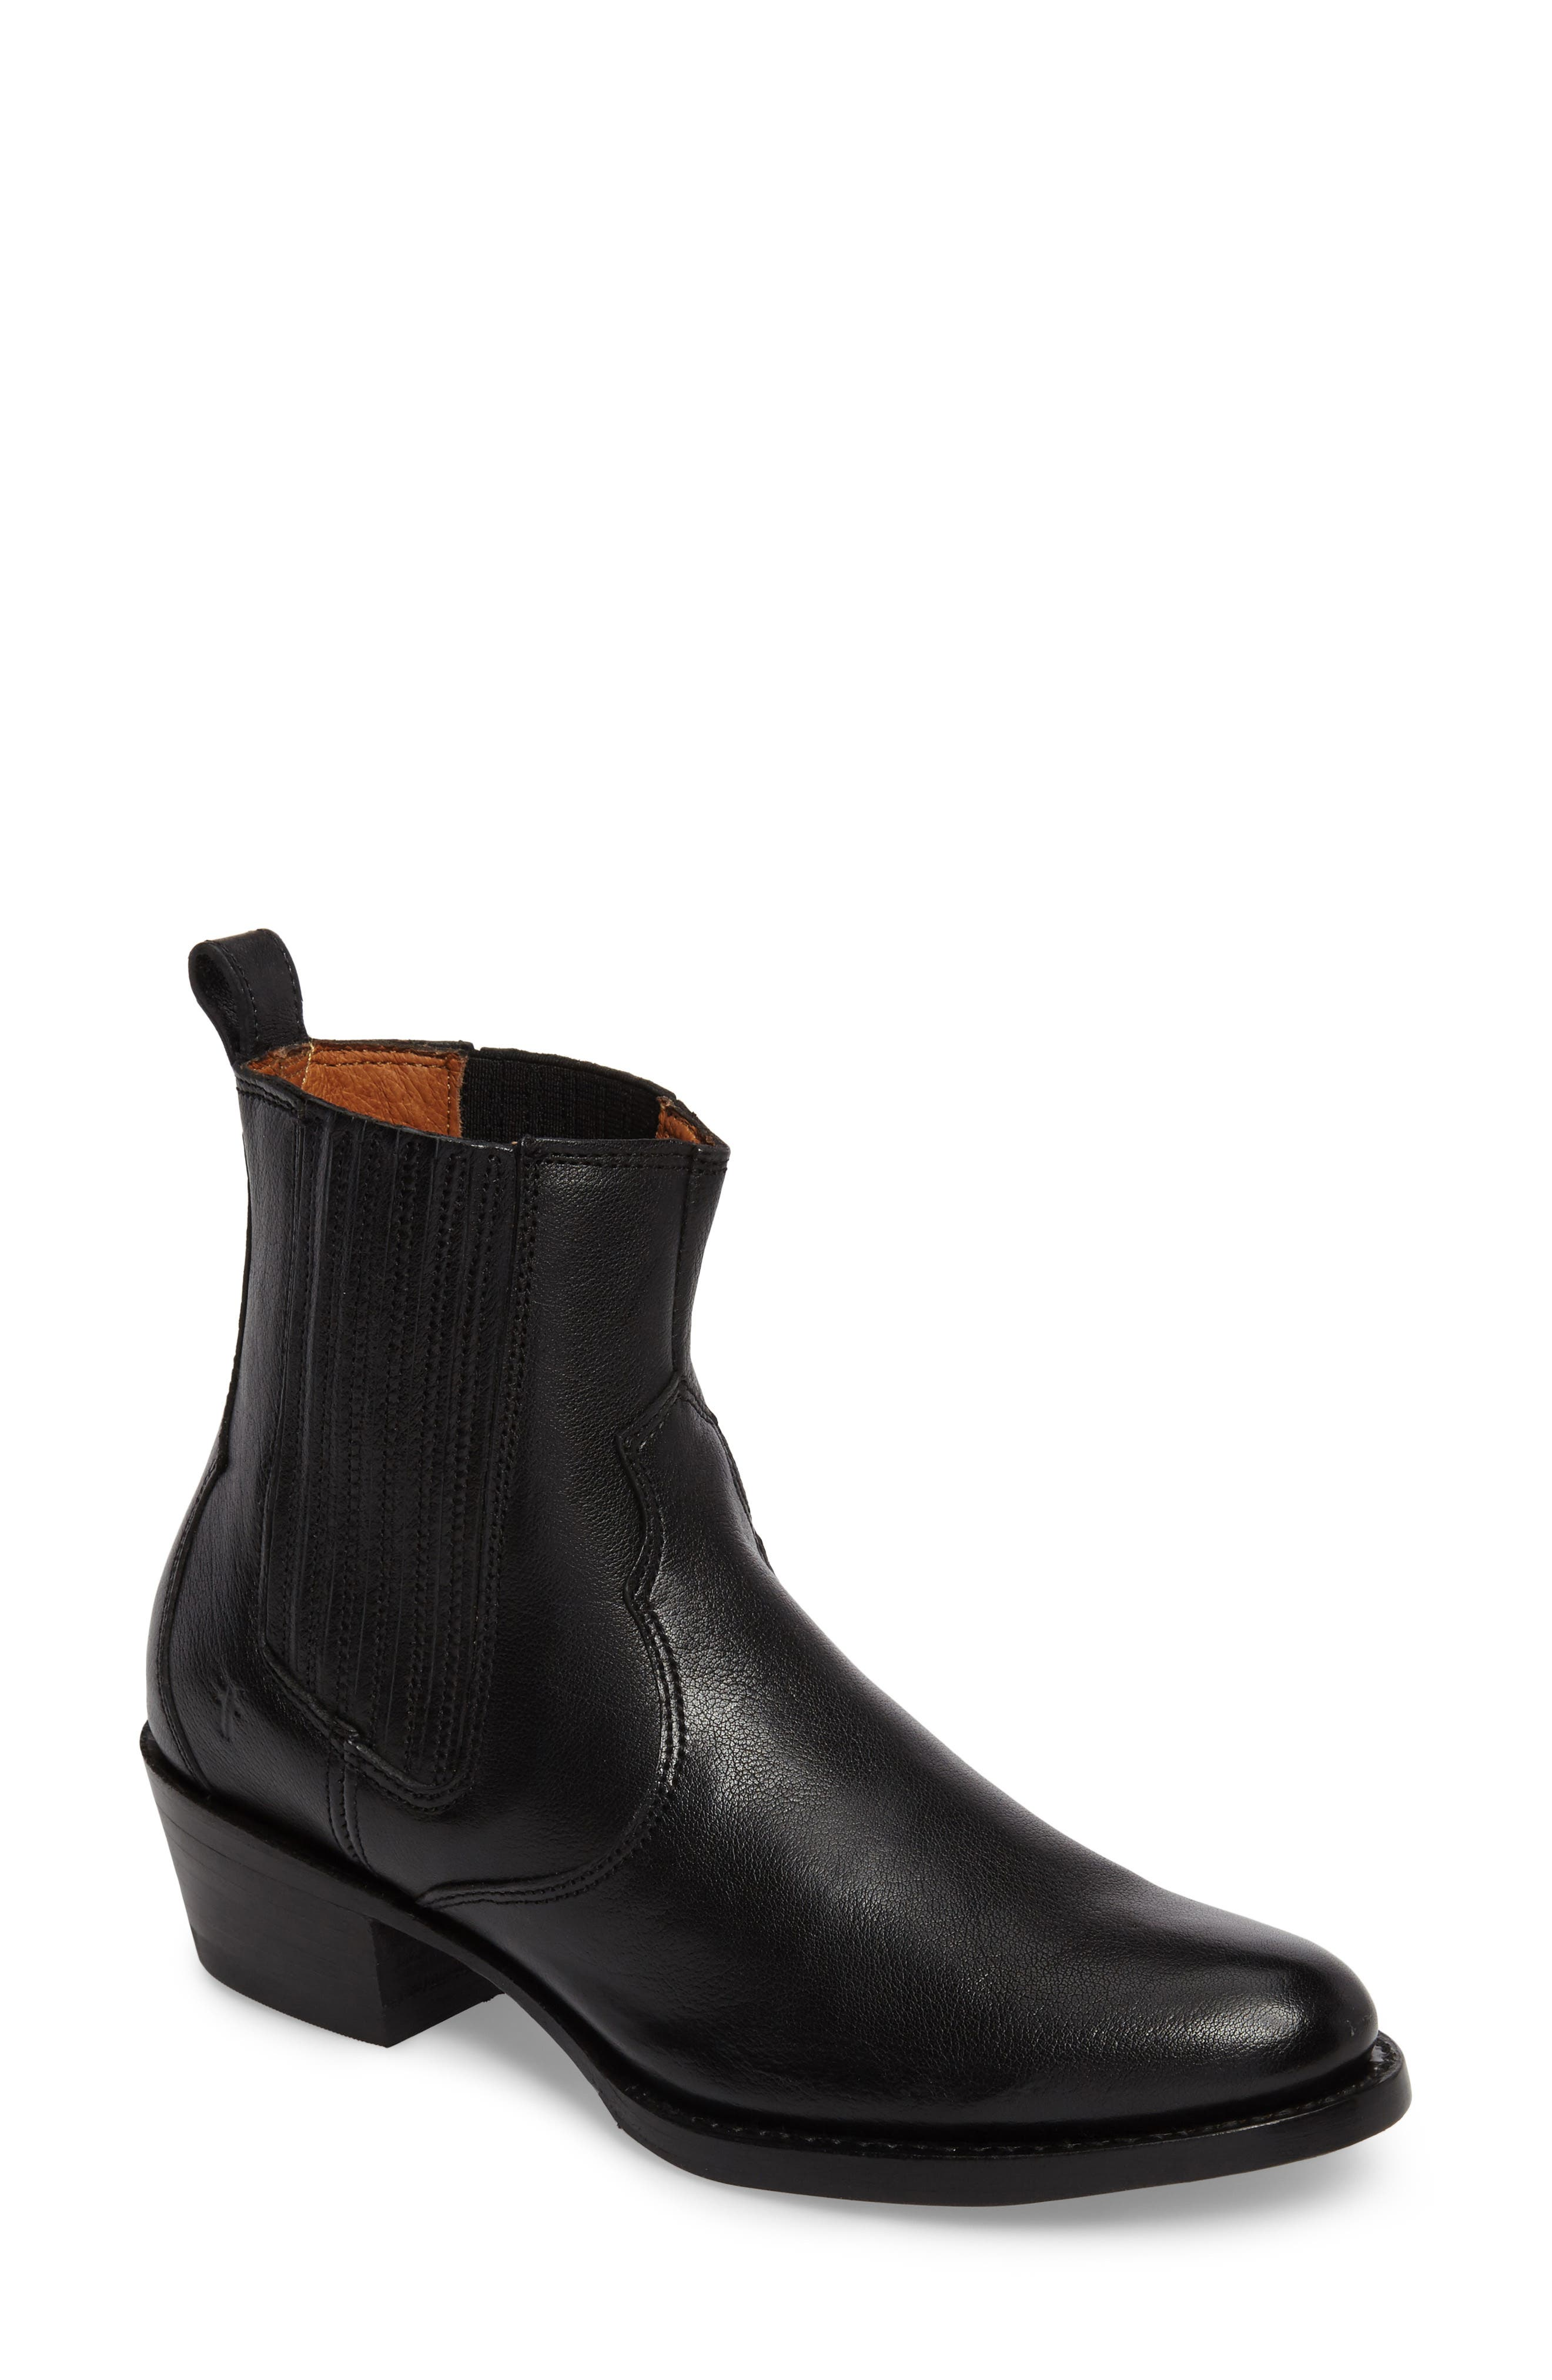 Diana Chelsea Boot,                         Main,                         color, 001